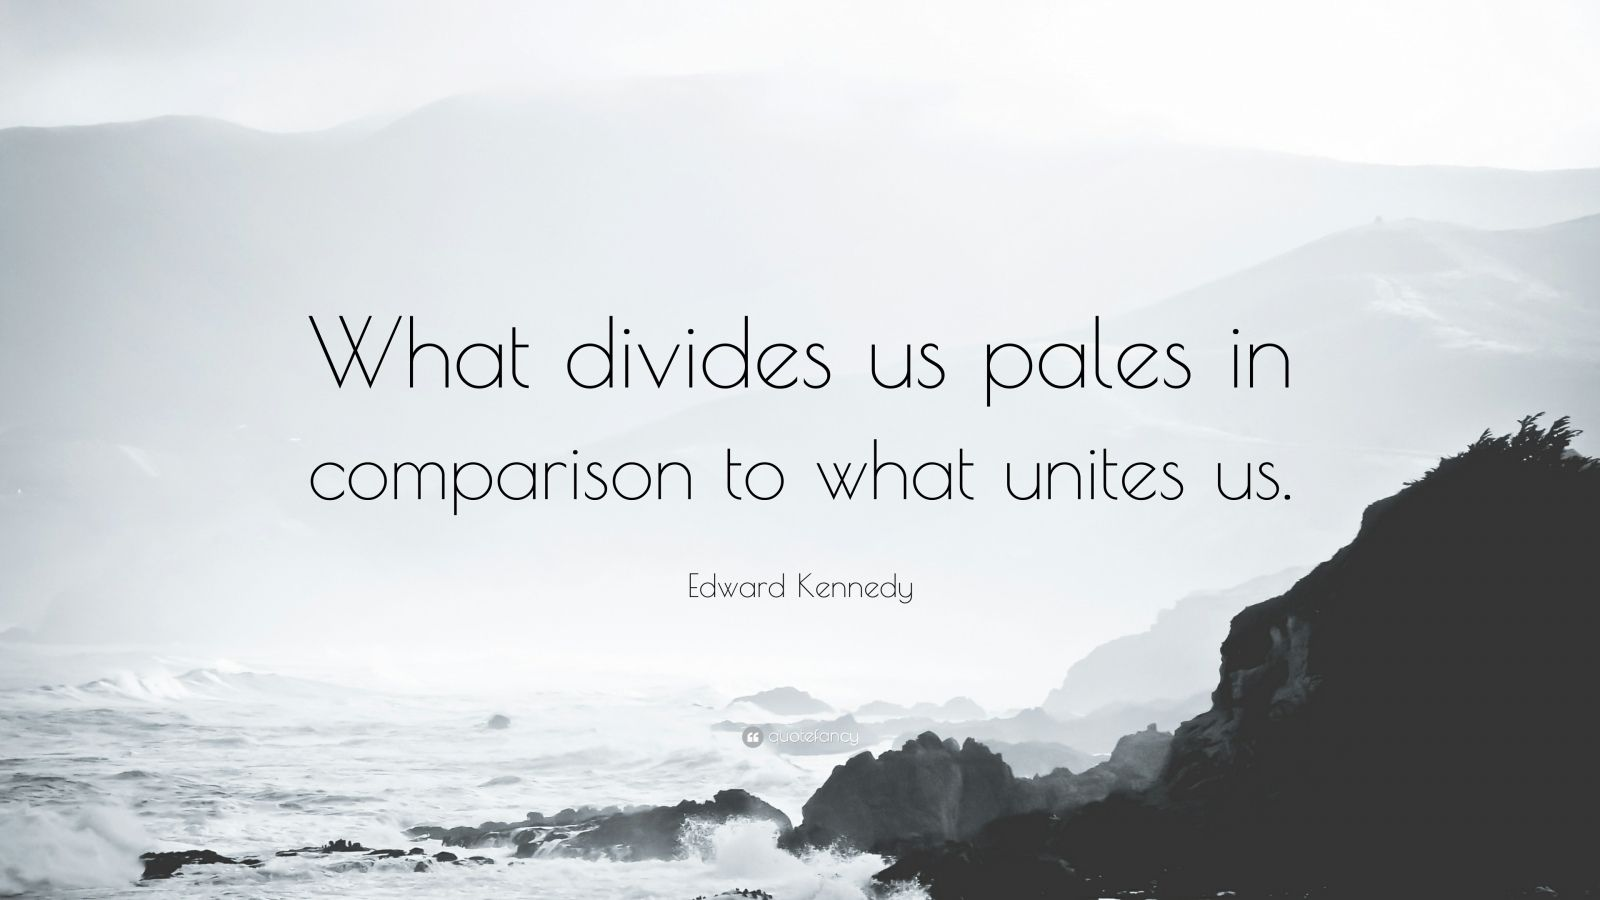 """Edward Kennedy Quote: """"What divides us pales in comparison to what unites us."""""""